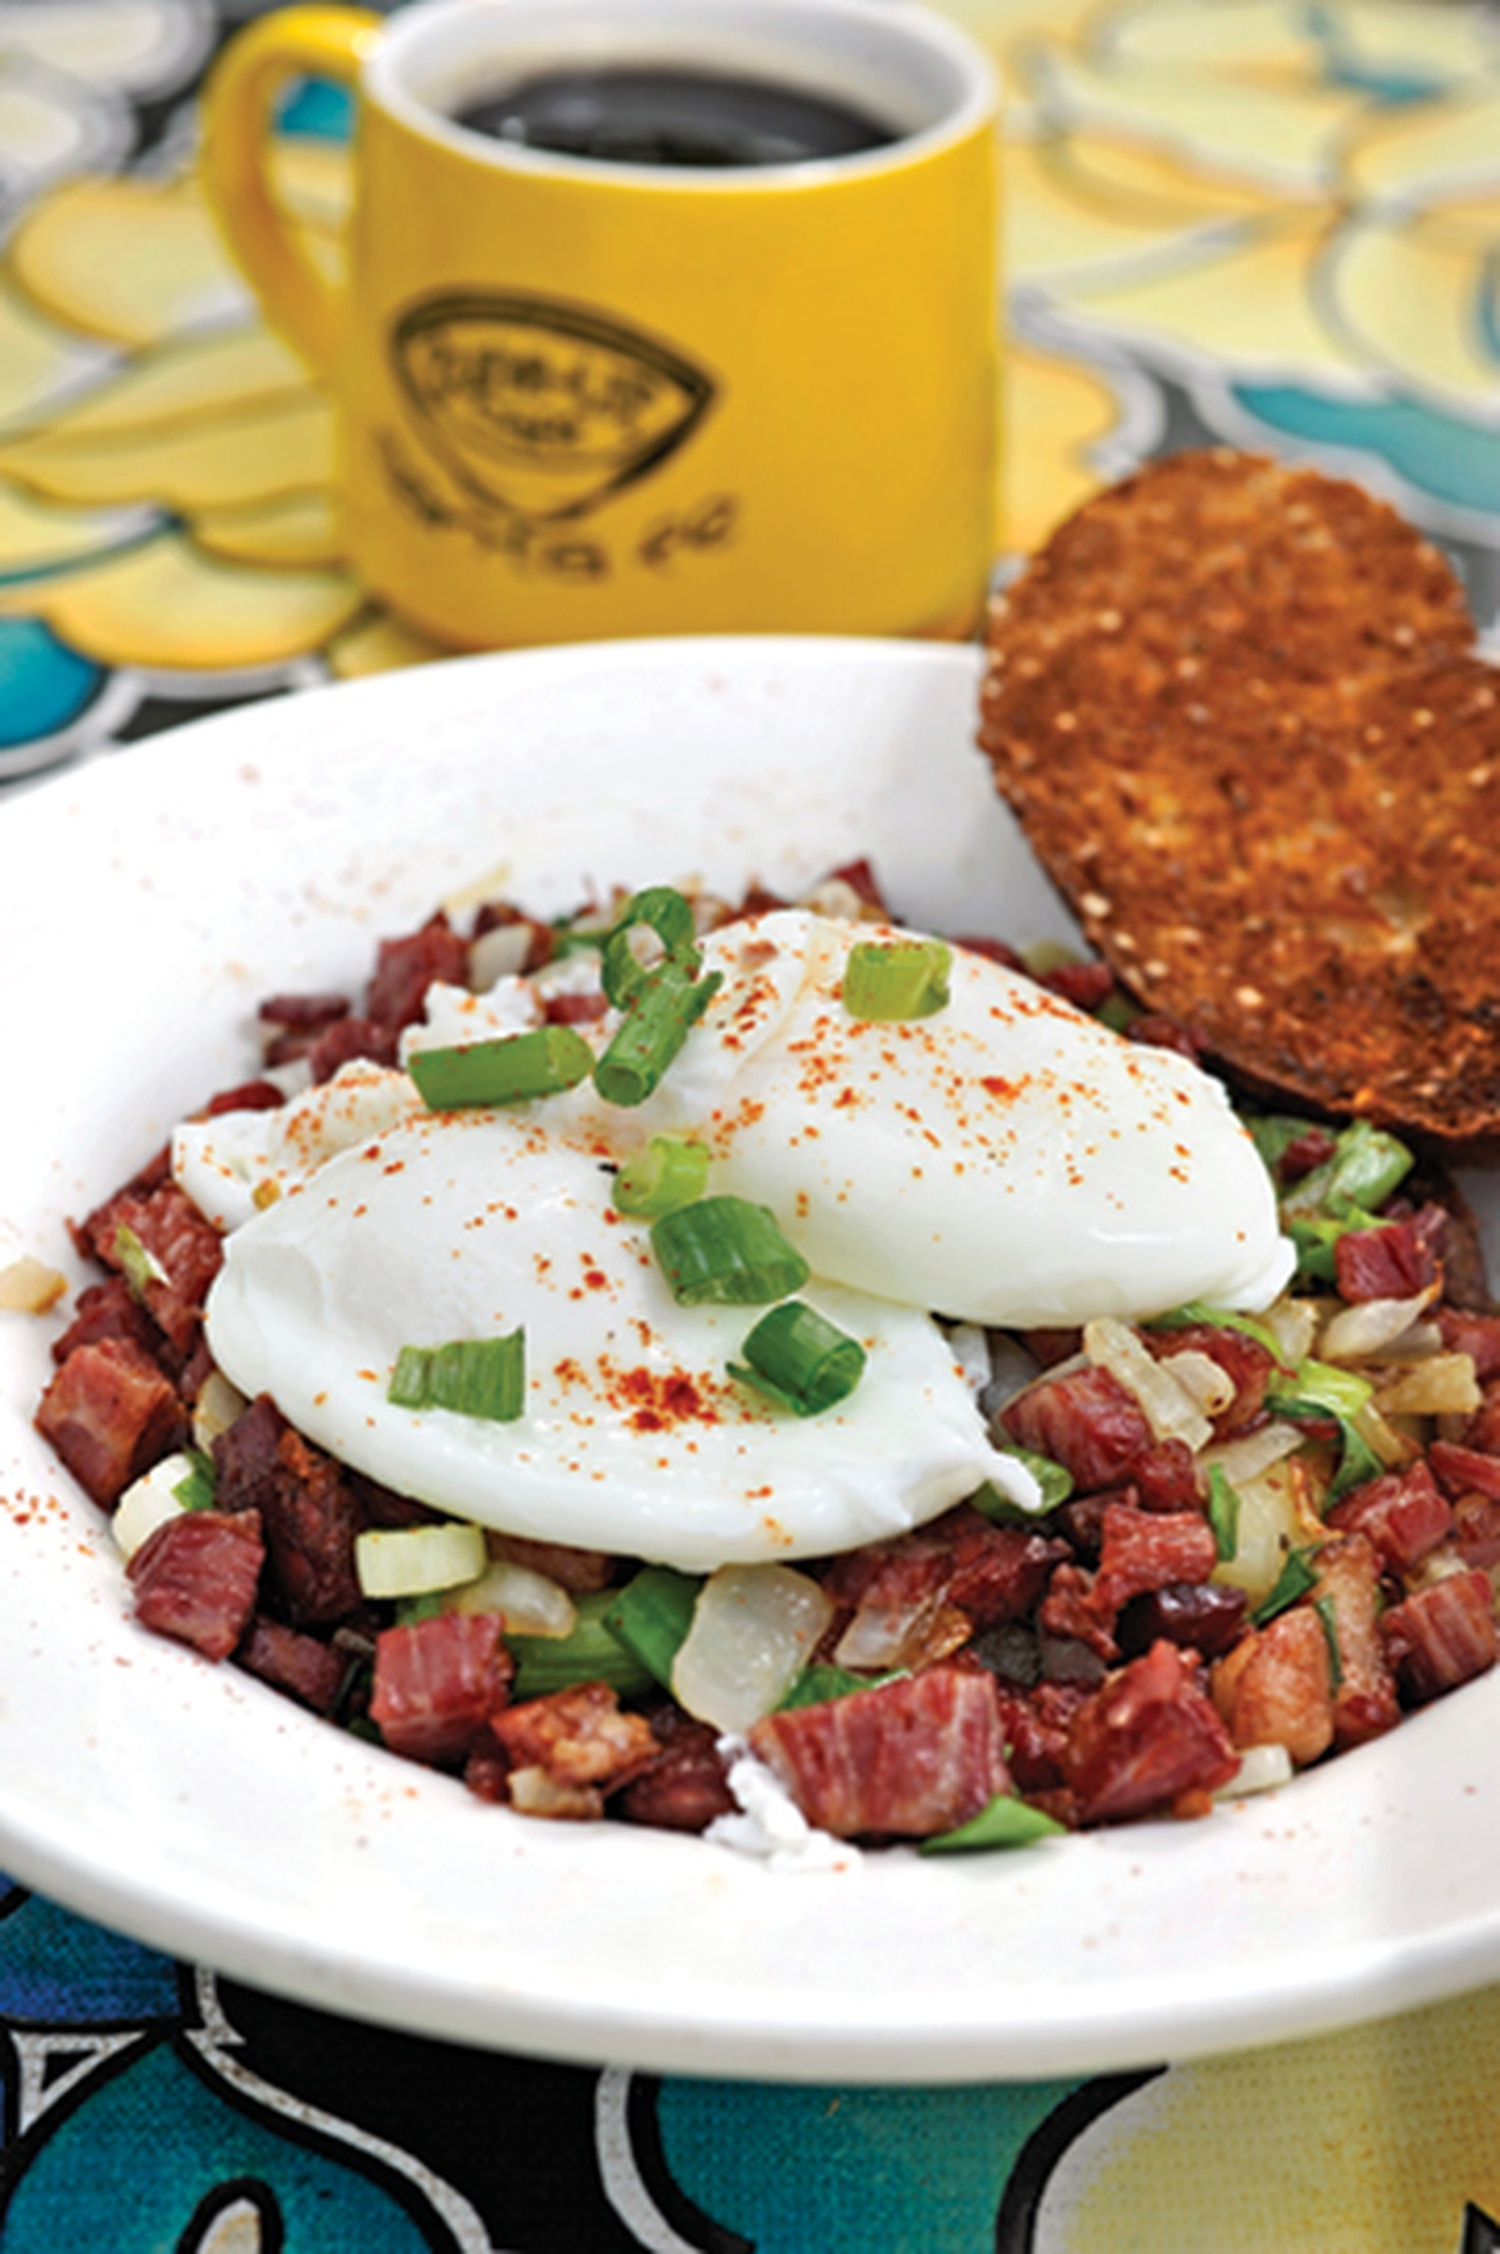 """Corned beef hash with housemade corned beef, two poached eggs and toast. 1115 Hickox St., 983-7060 Breakfast, lunch and dinner daily Tune-Up Café If you want take a date out for a decent meal and appear local at the same time, try the Tune-Up Cafe. It's a neighborhood bar whose range in cuisine is hard to exactly define but definitely Latino at its core. Is it a Mexican bistro? Is it an Italian eatery? Charlotte Rivera says she'd prefer not to pigeonhole and adds that everything is awesome. For sure, a few of the courses are funky sounding, like the """"Eggs in hell"""" ($10.95), a pair of poached eggs in homemade pomodoro sauce with crushed red peppers, spinach, Parmesan cheese, hash browns and ciabatta toast (crusty on the outside and soft on the inside). Or try the lamb barbacoa tacos ($11.95). They've got to be the best corn-tortilla tacos in town with cotija cheese, spinach, radish, onion, cilantro, refried beans, Spanish rice and árbol tomatillo sauce. The fresh squeezed cantaloupe and/or watermelon ($2) are also a nutritious alternative to orange juice. And it's spooned out of a big container that makes you feel like you're south of the border. -TR"""